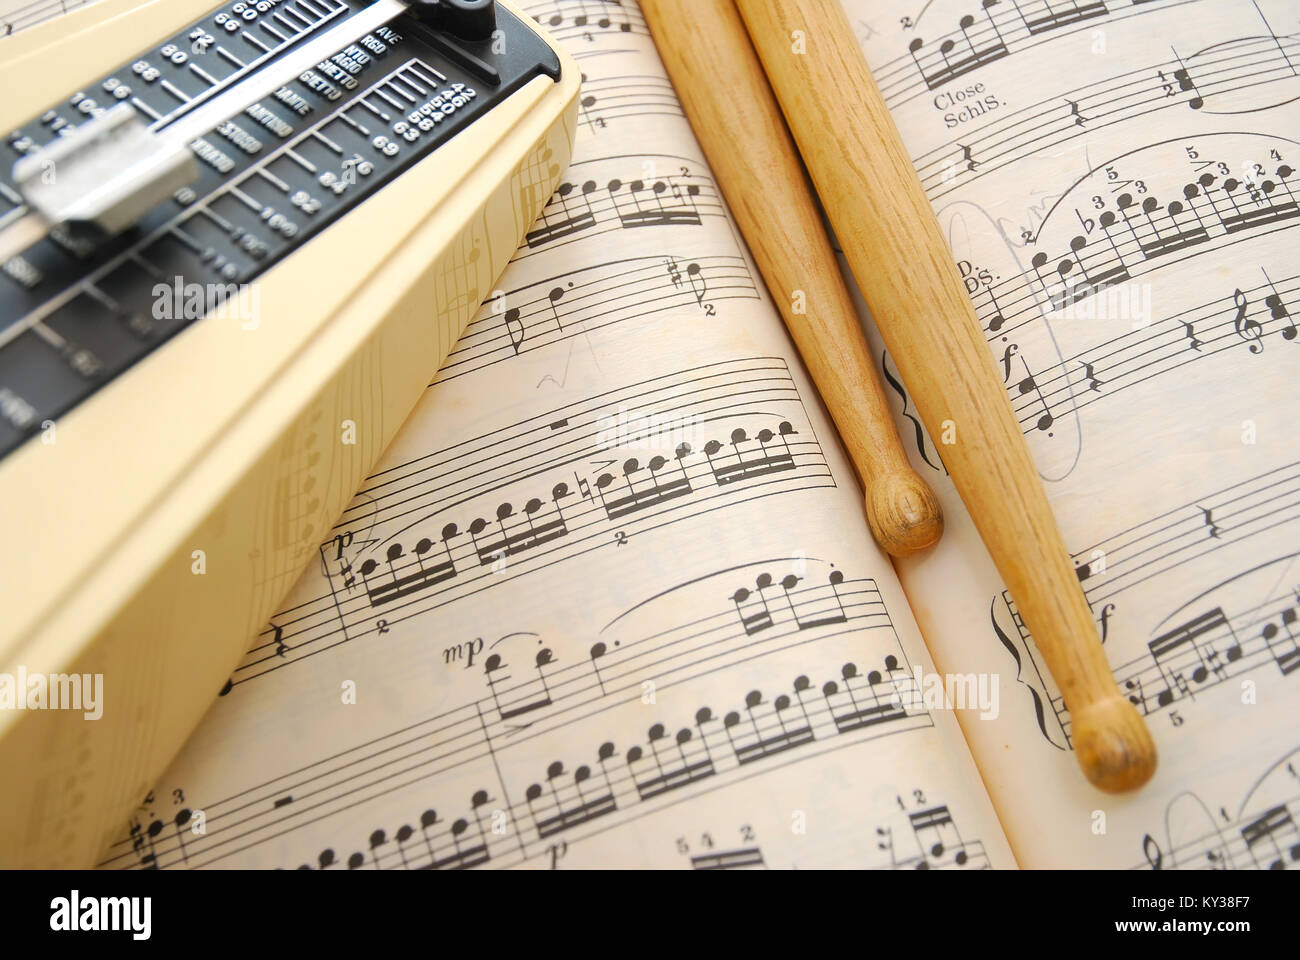 Music book, drum sticks and metronome. For concepts such as music and creativity. - Stock Image